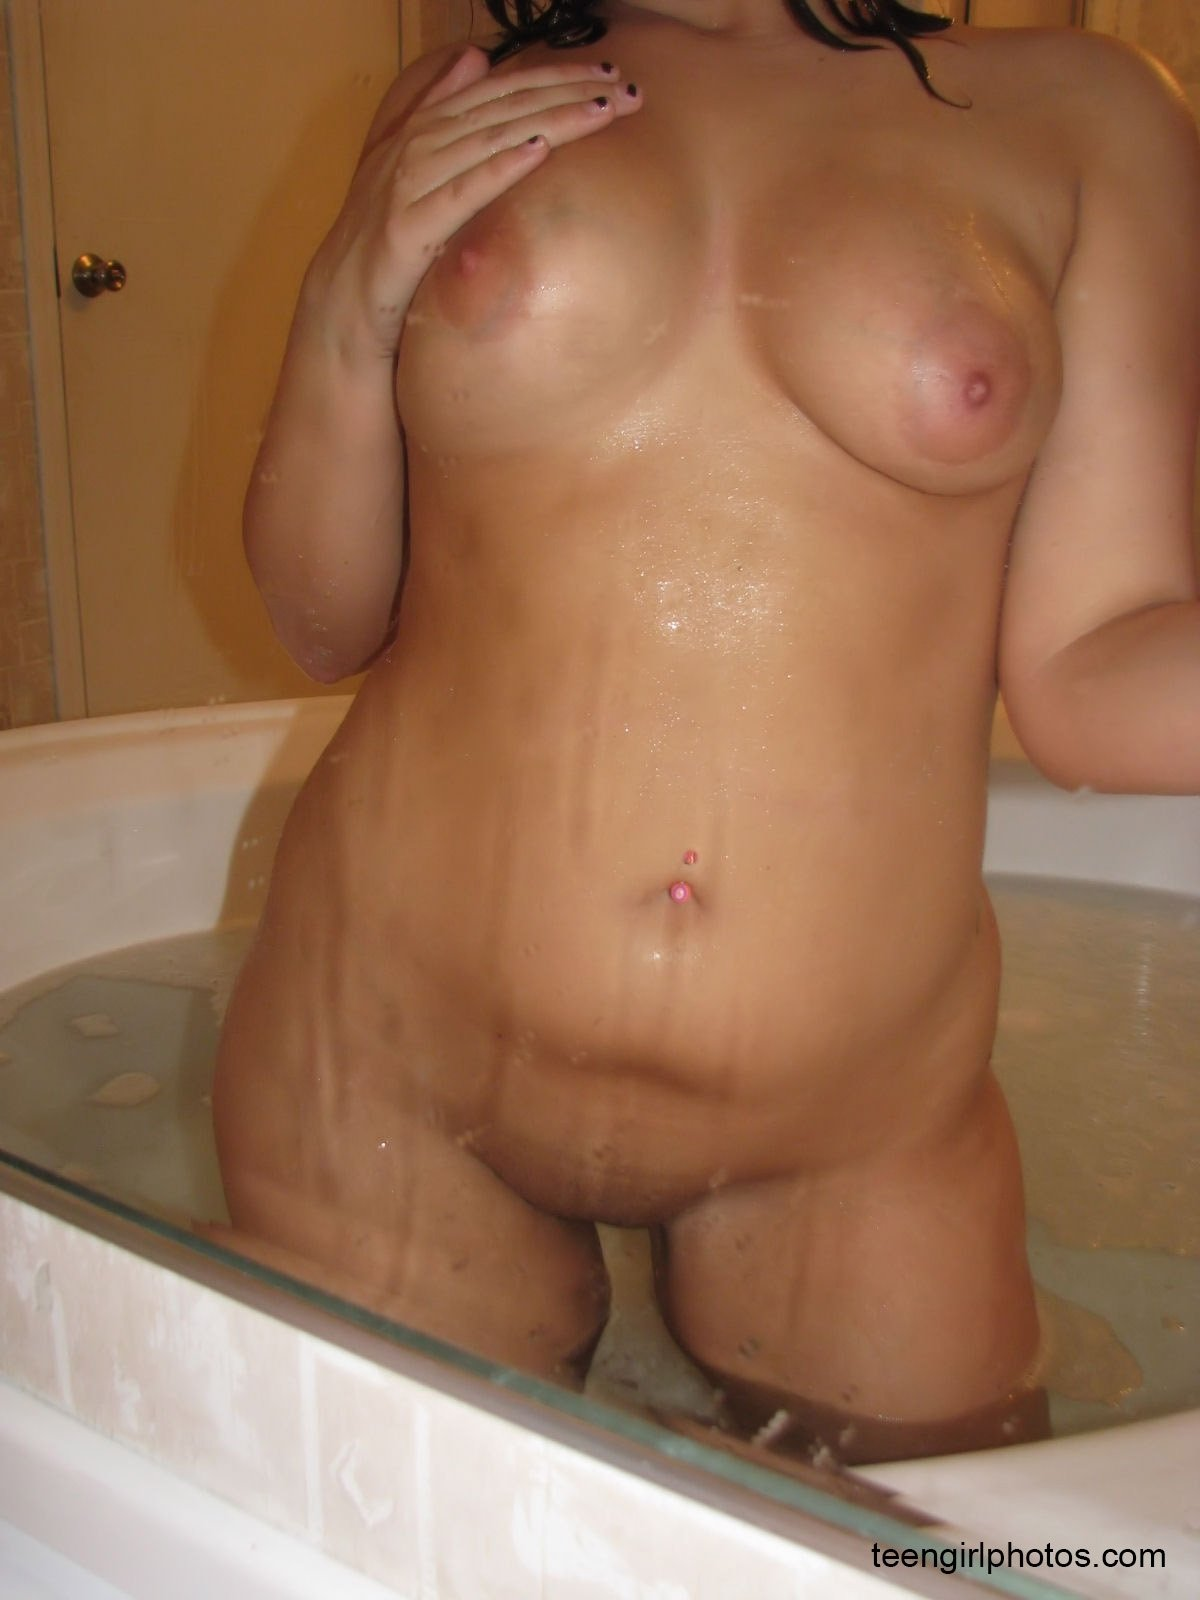 Amature blog mature videos amature wife sex